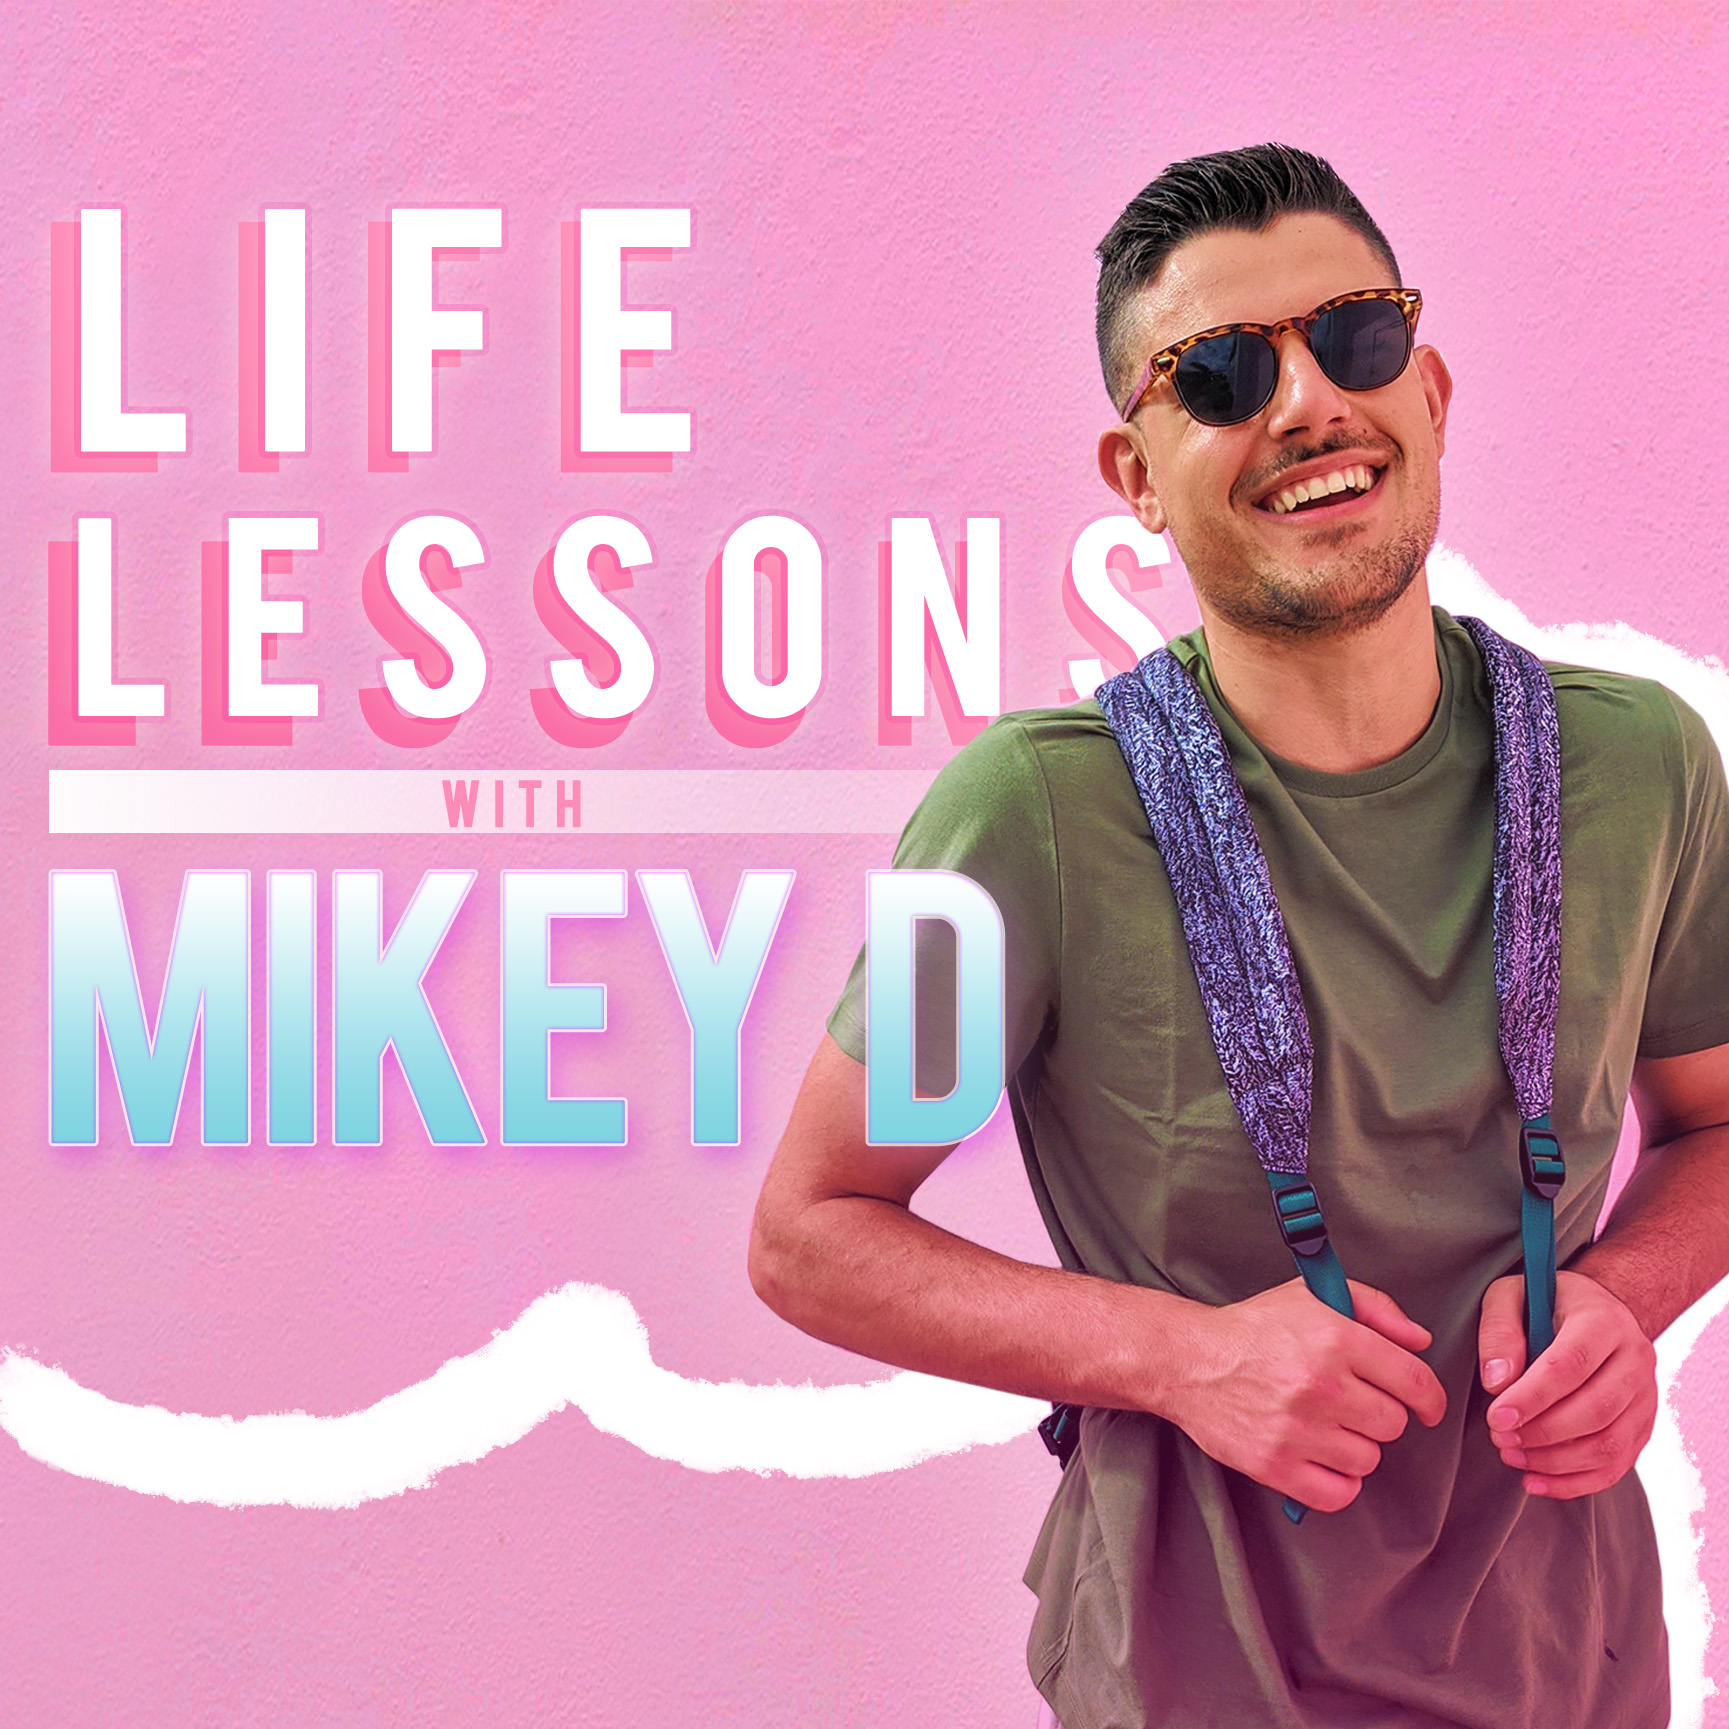 Life Lessons with Mikey D